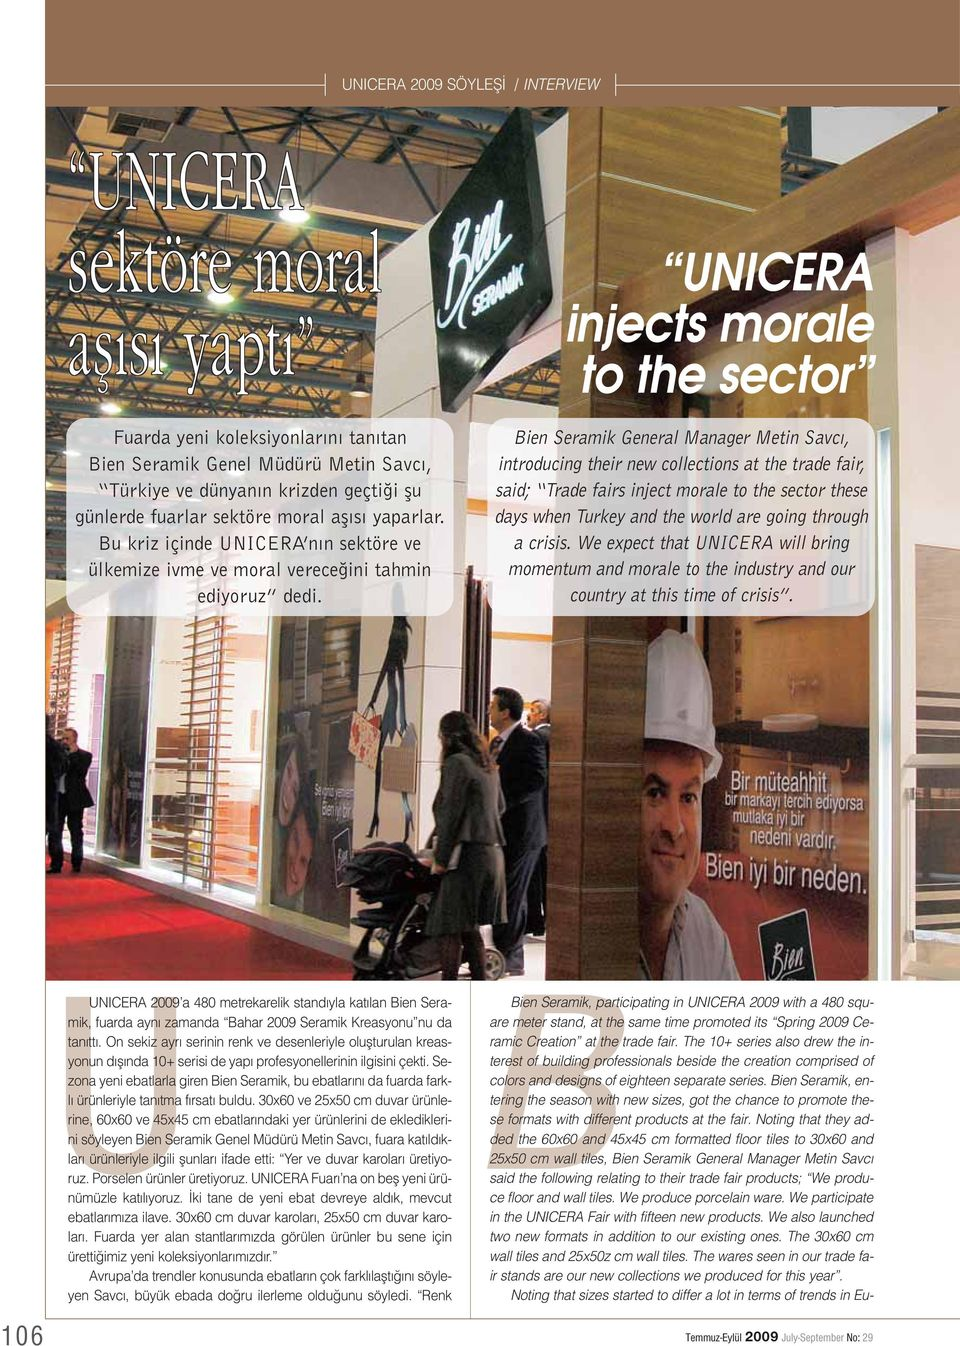 UNICERA injects morale to the sector Bien Seramik General Manager Metin Savc, introducing their new collections at the trade fair, said; Trade fairs inject morale to the sector these days when Turkey